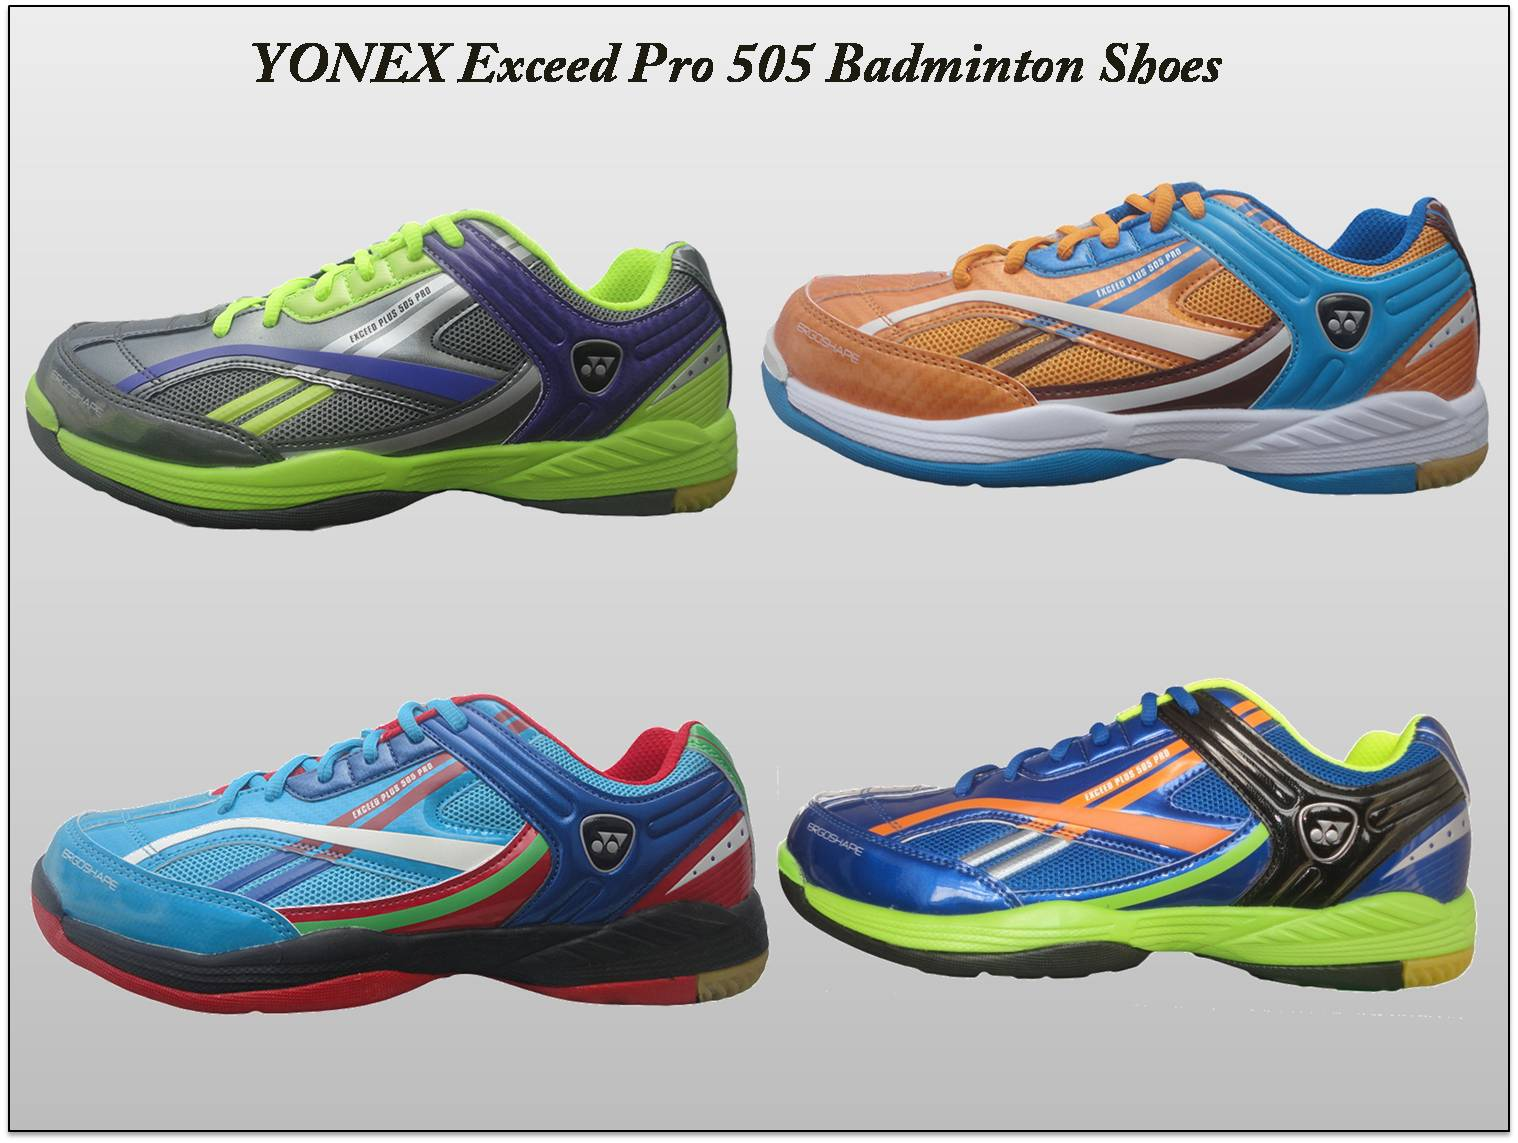 YONEX Exceed Pro 505 Badminton Shoes side view 1